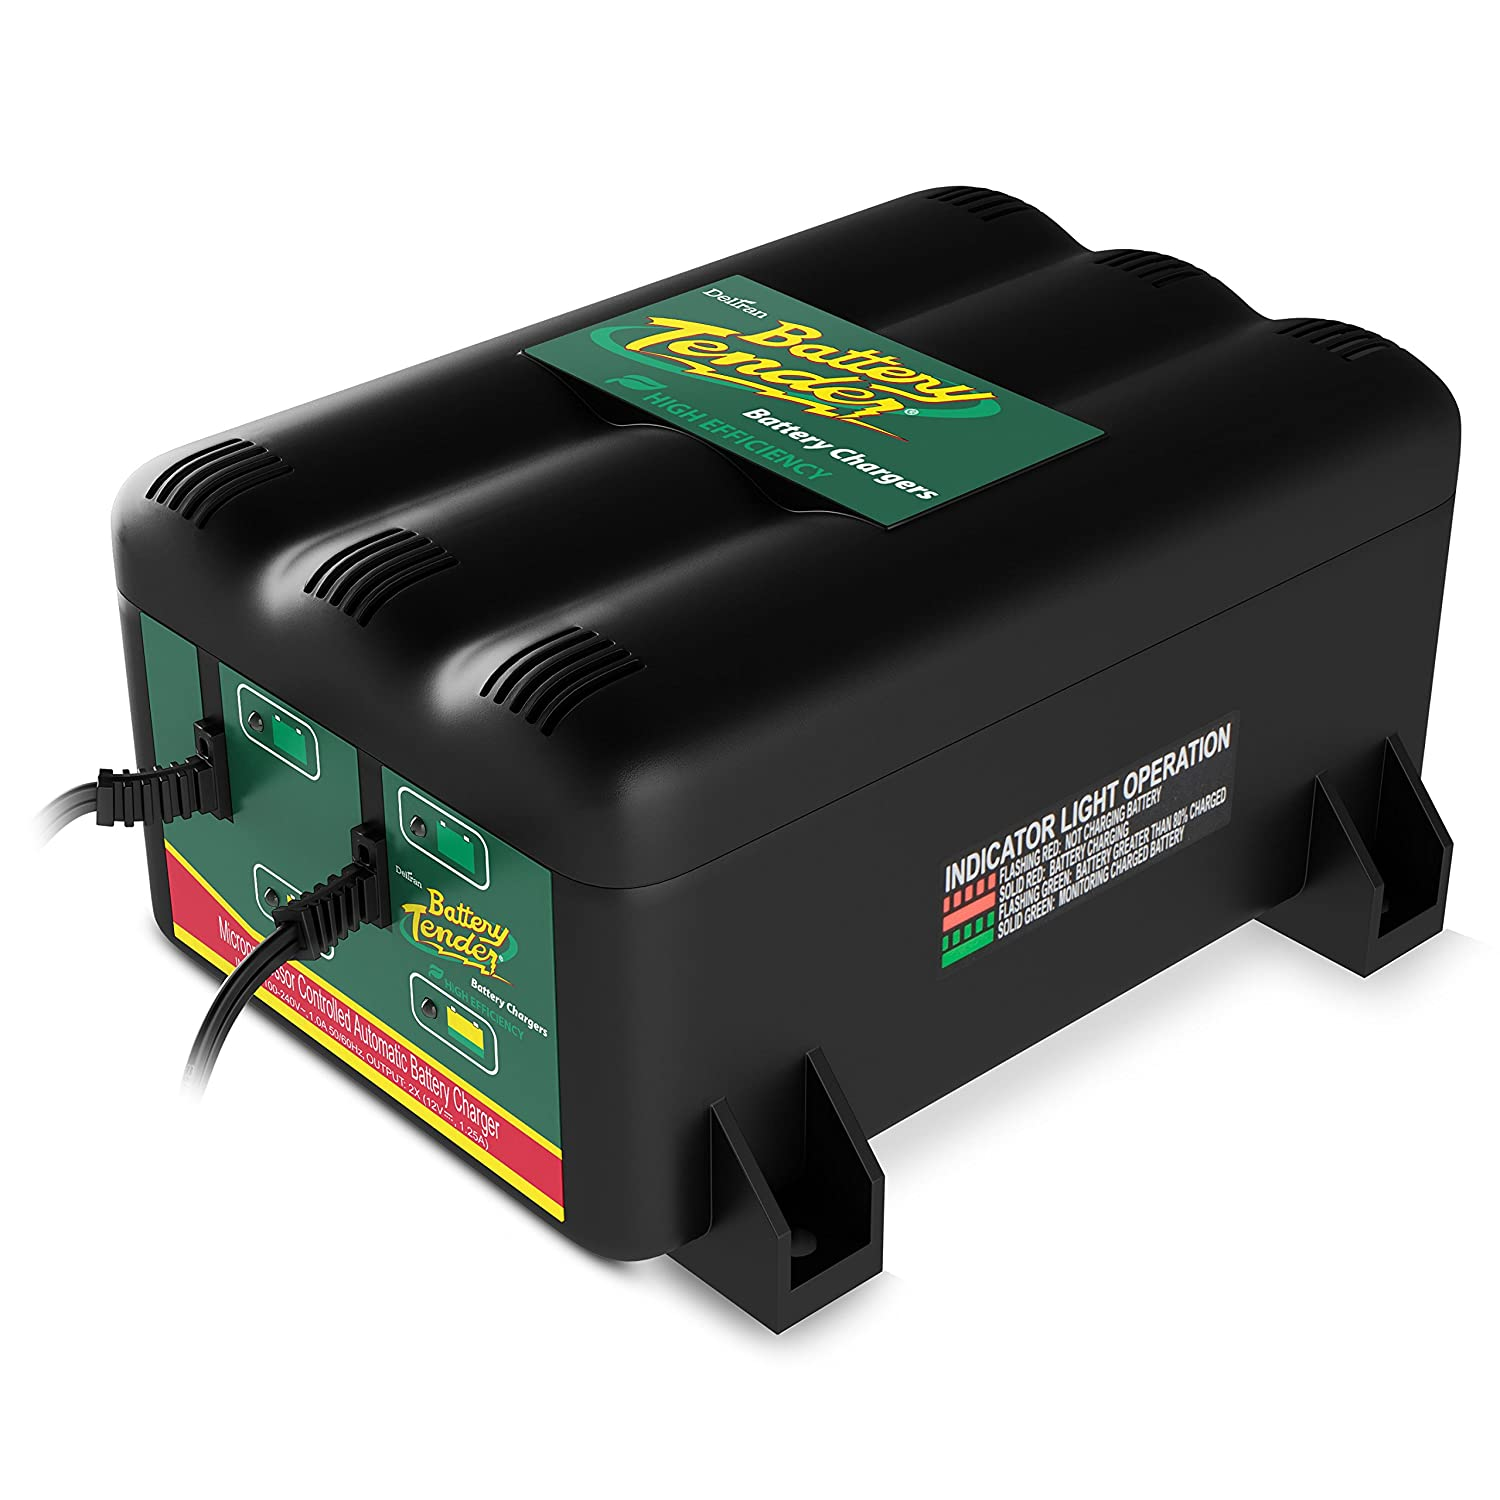 Battery Tender Battery Management System